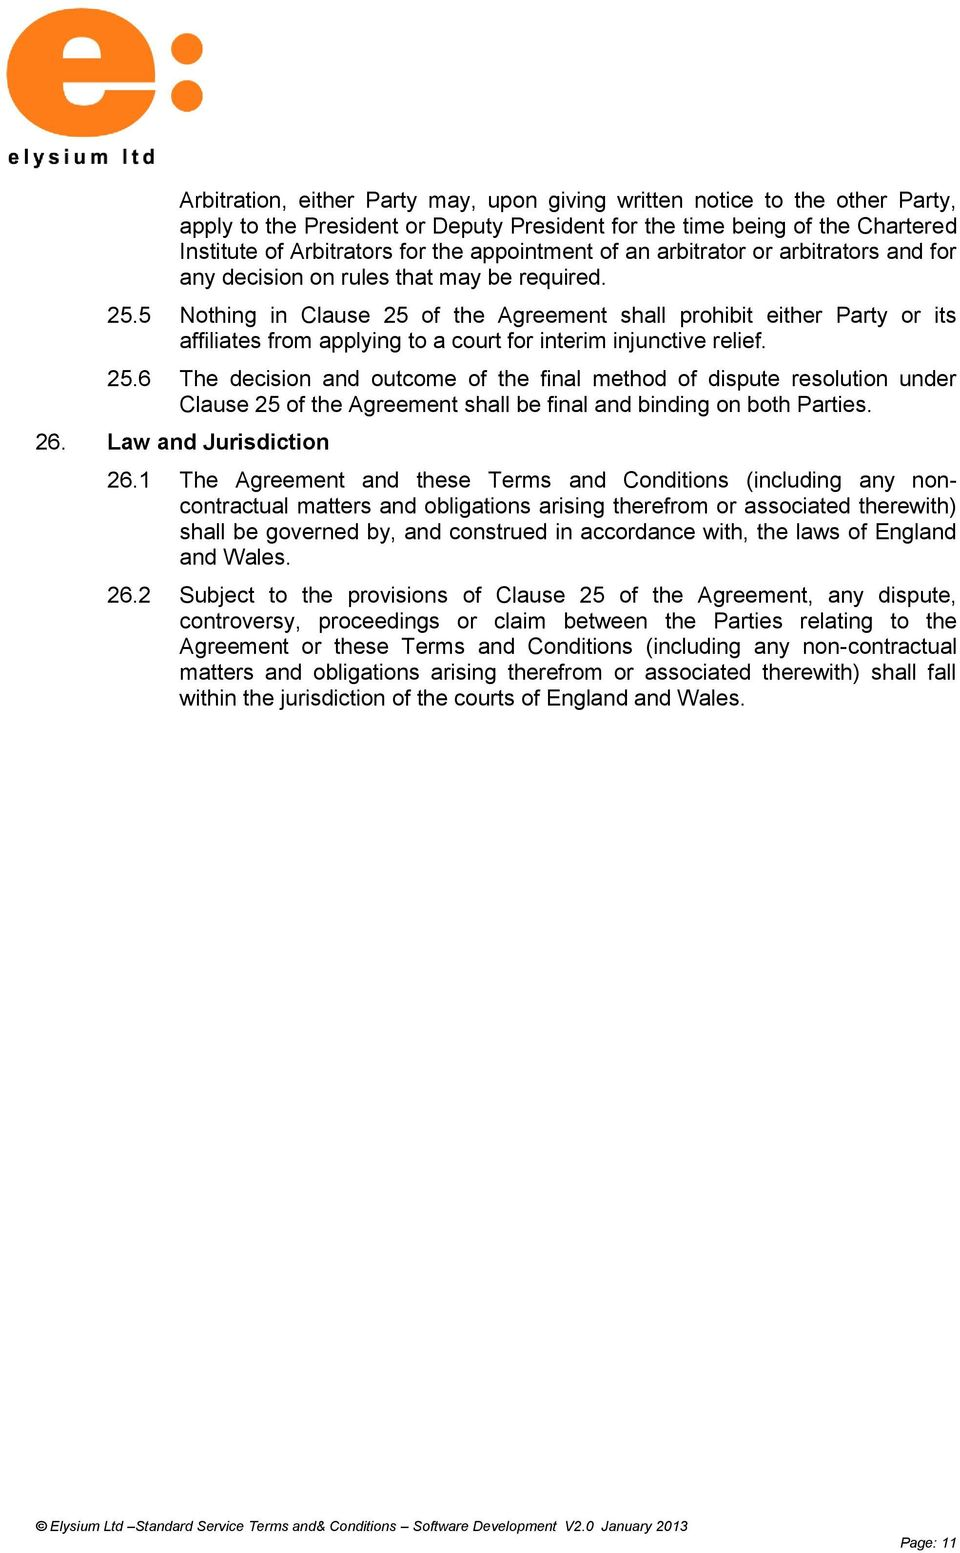 5 Nothing in Clause 25 of the Agreement shall prohibit either Party or its affiliates from applying to a court for interim injunctive relief. 25.6 The decision and outcome of the final method of dispute resolution under Clause 25 of the Agreement shall be final and binding on both Parties.